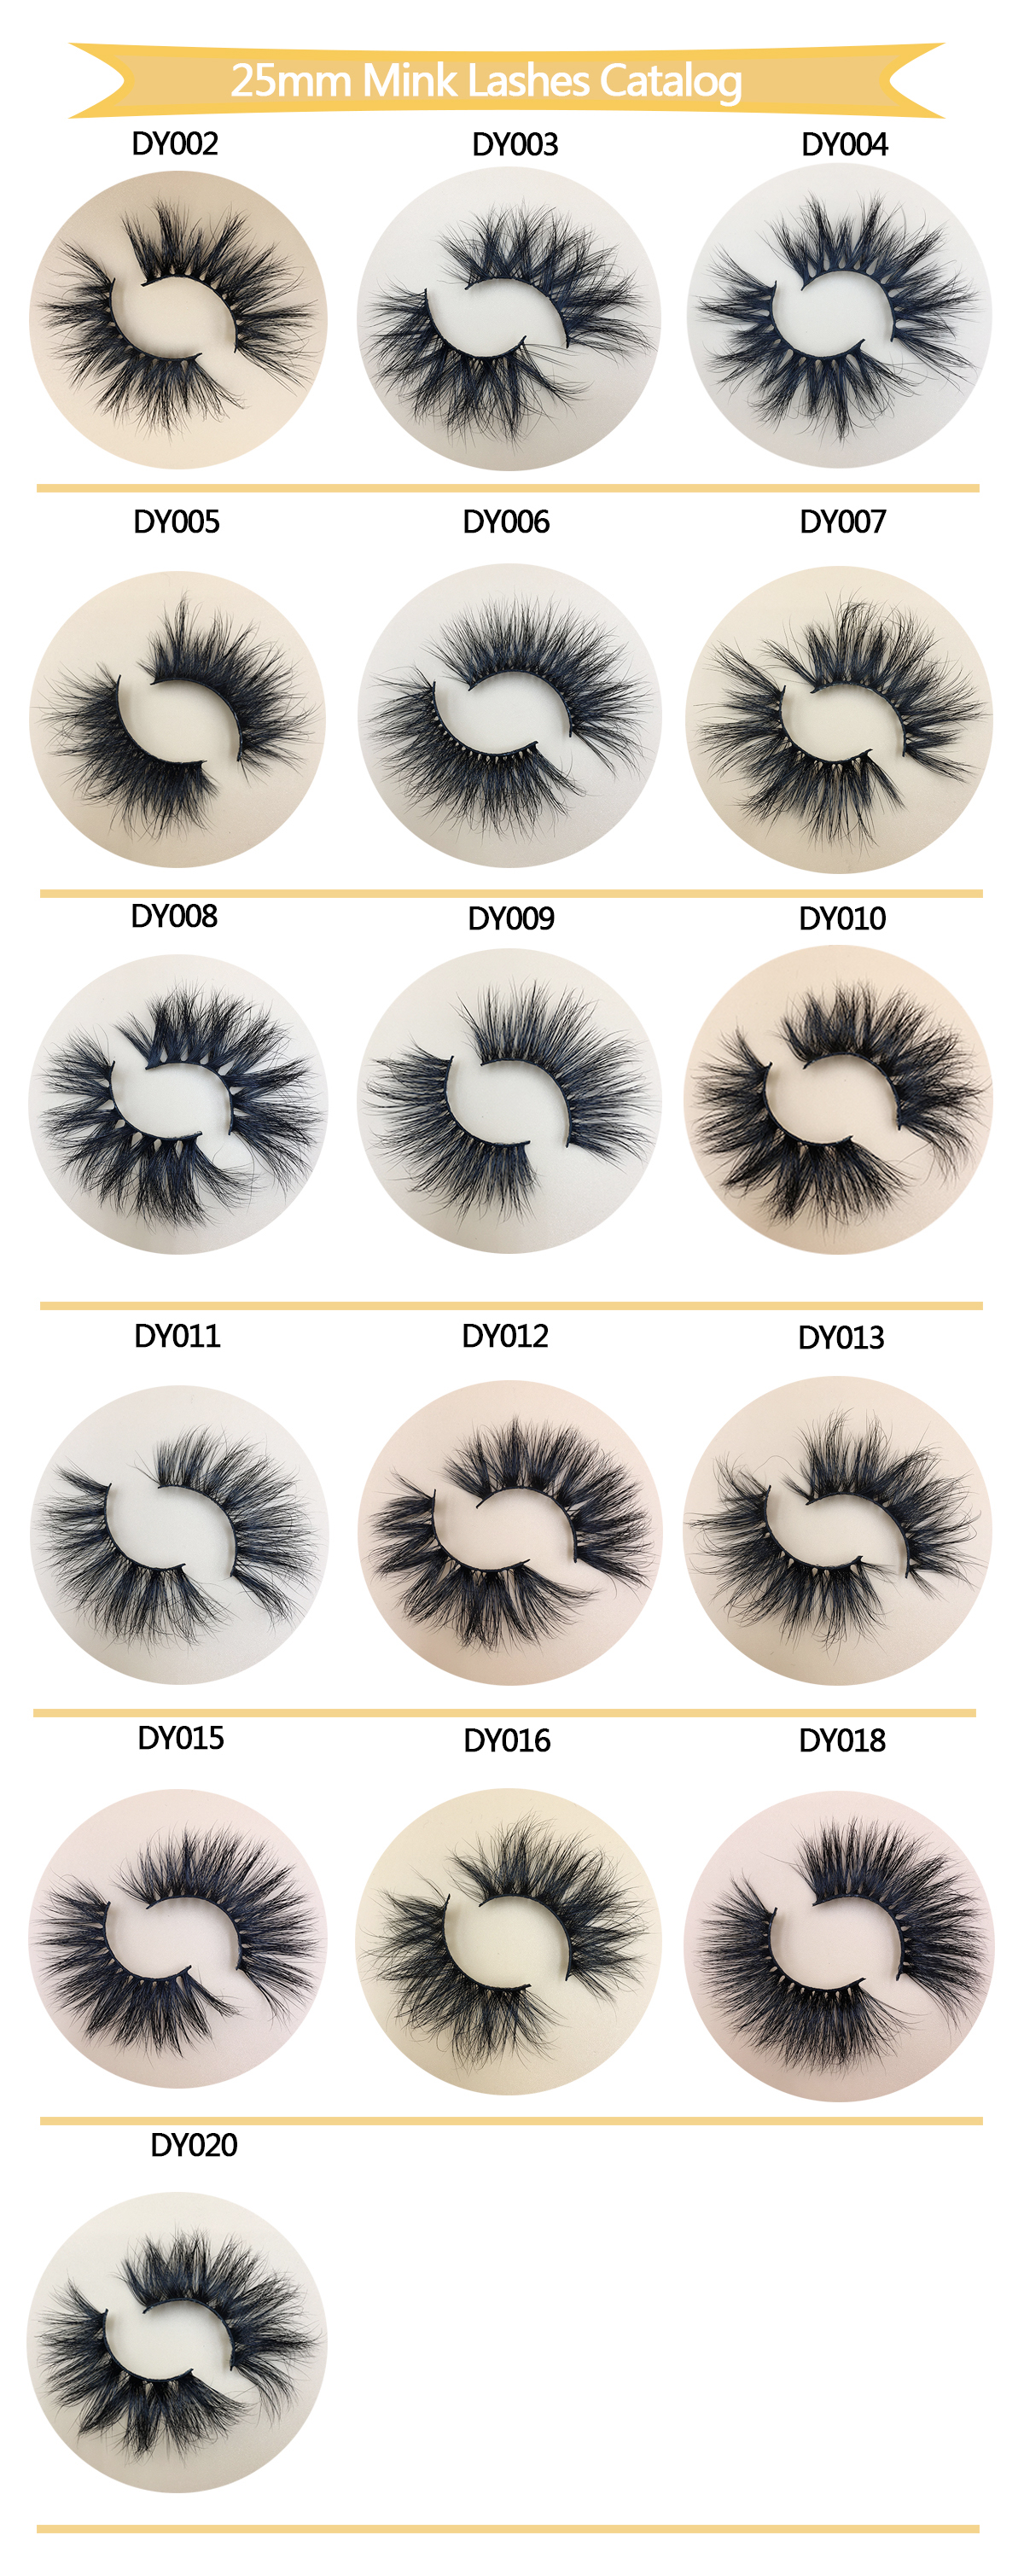 New DY Serise 25mm Mink Lashes 1